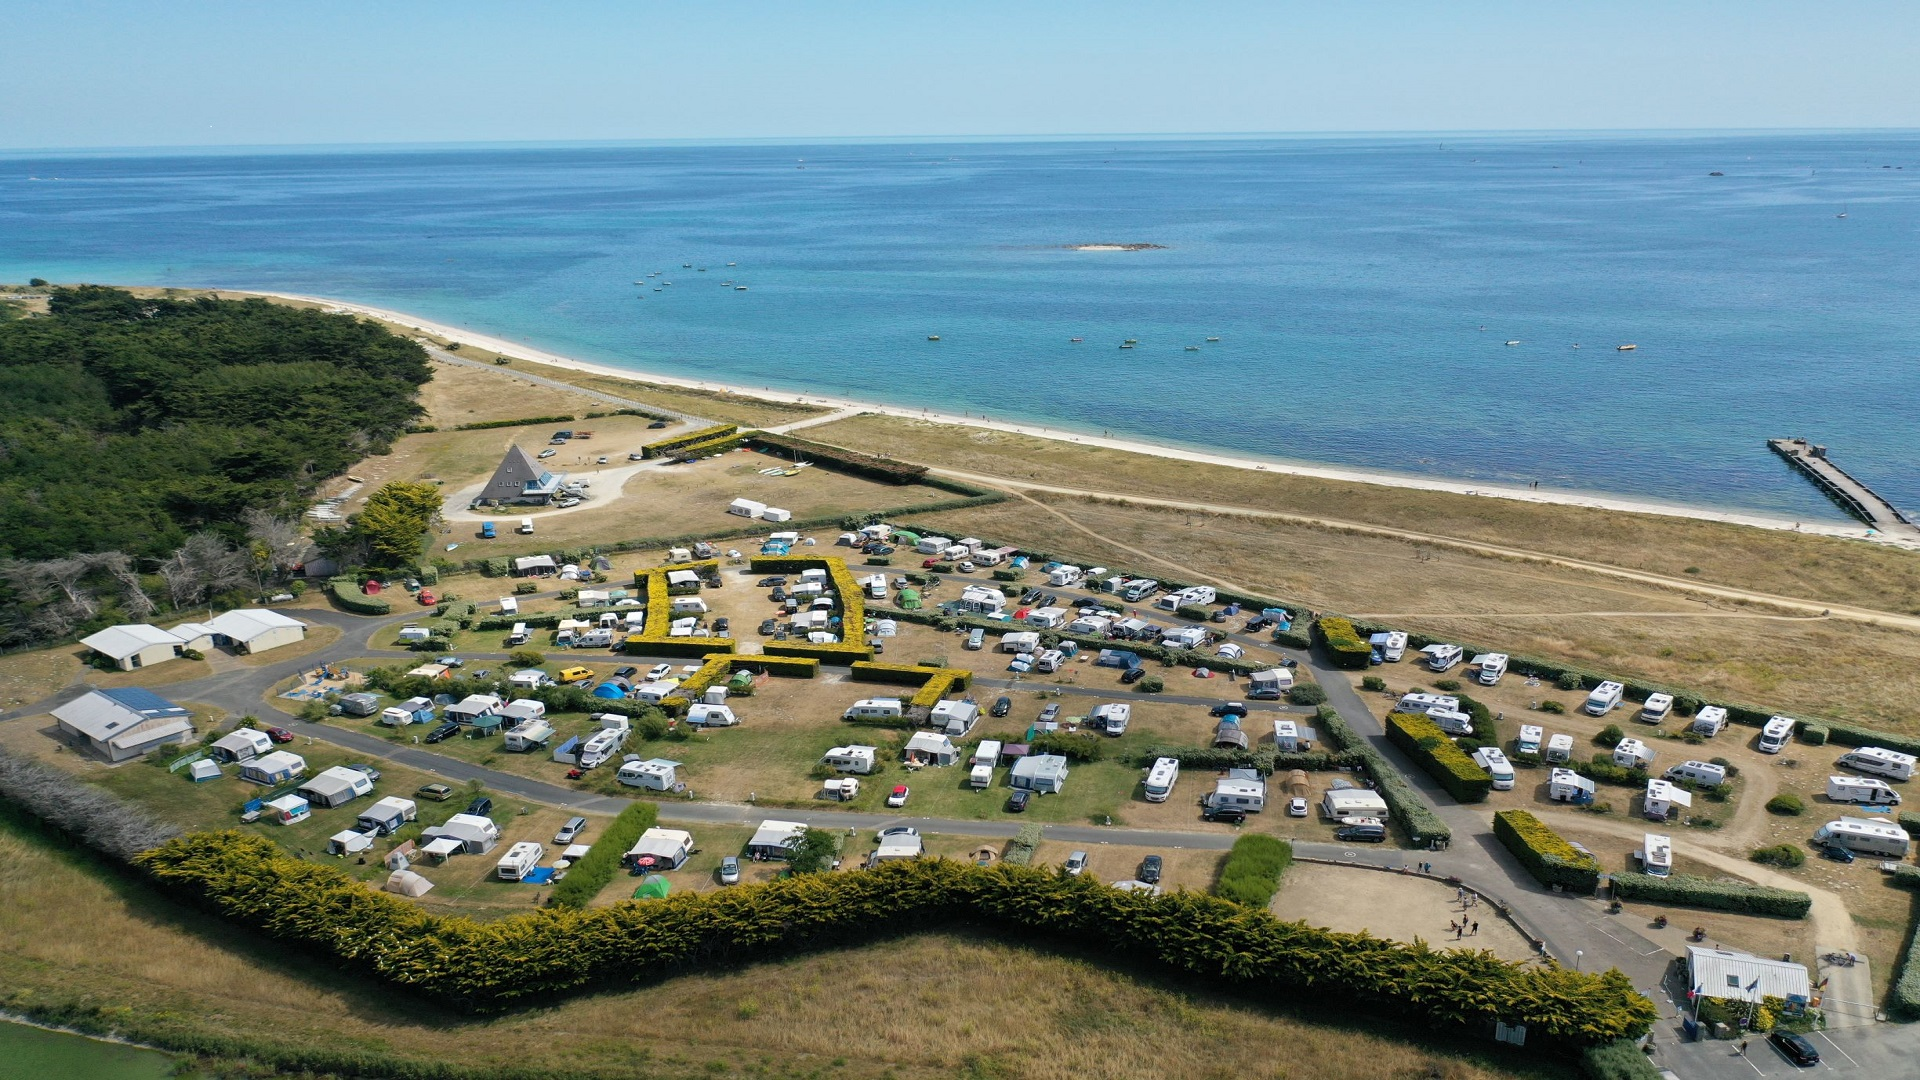 Le camping Toul ar  Ster